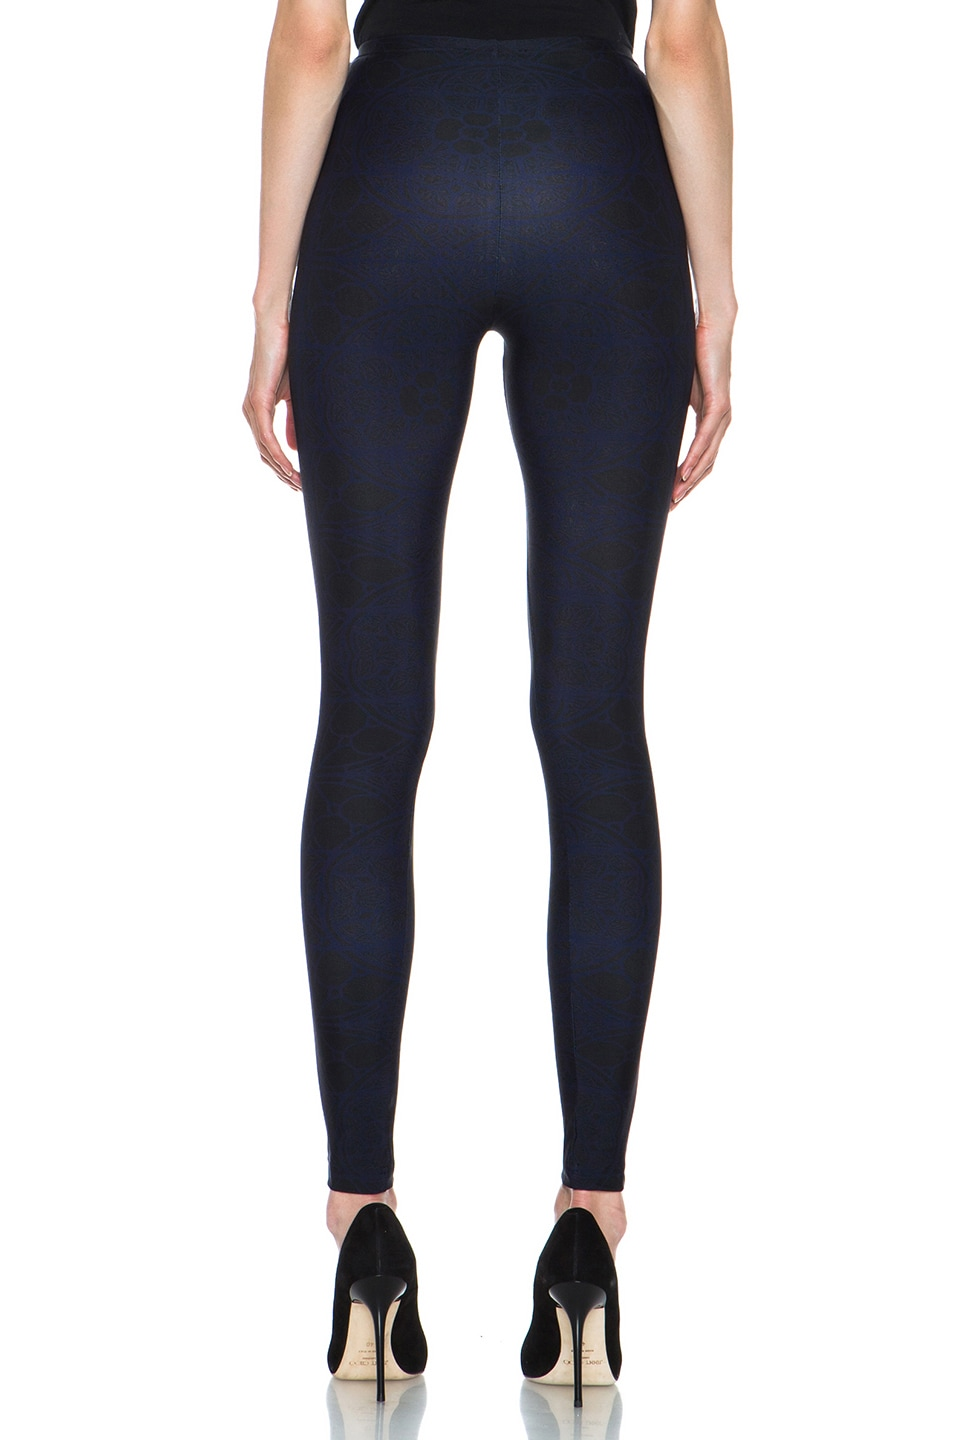 Image 4 of Alexander McQueen Stained Glass Print Nylon-Blend Legging in Navy & Black